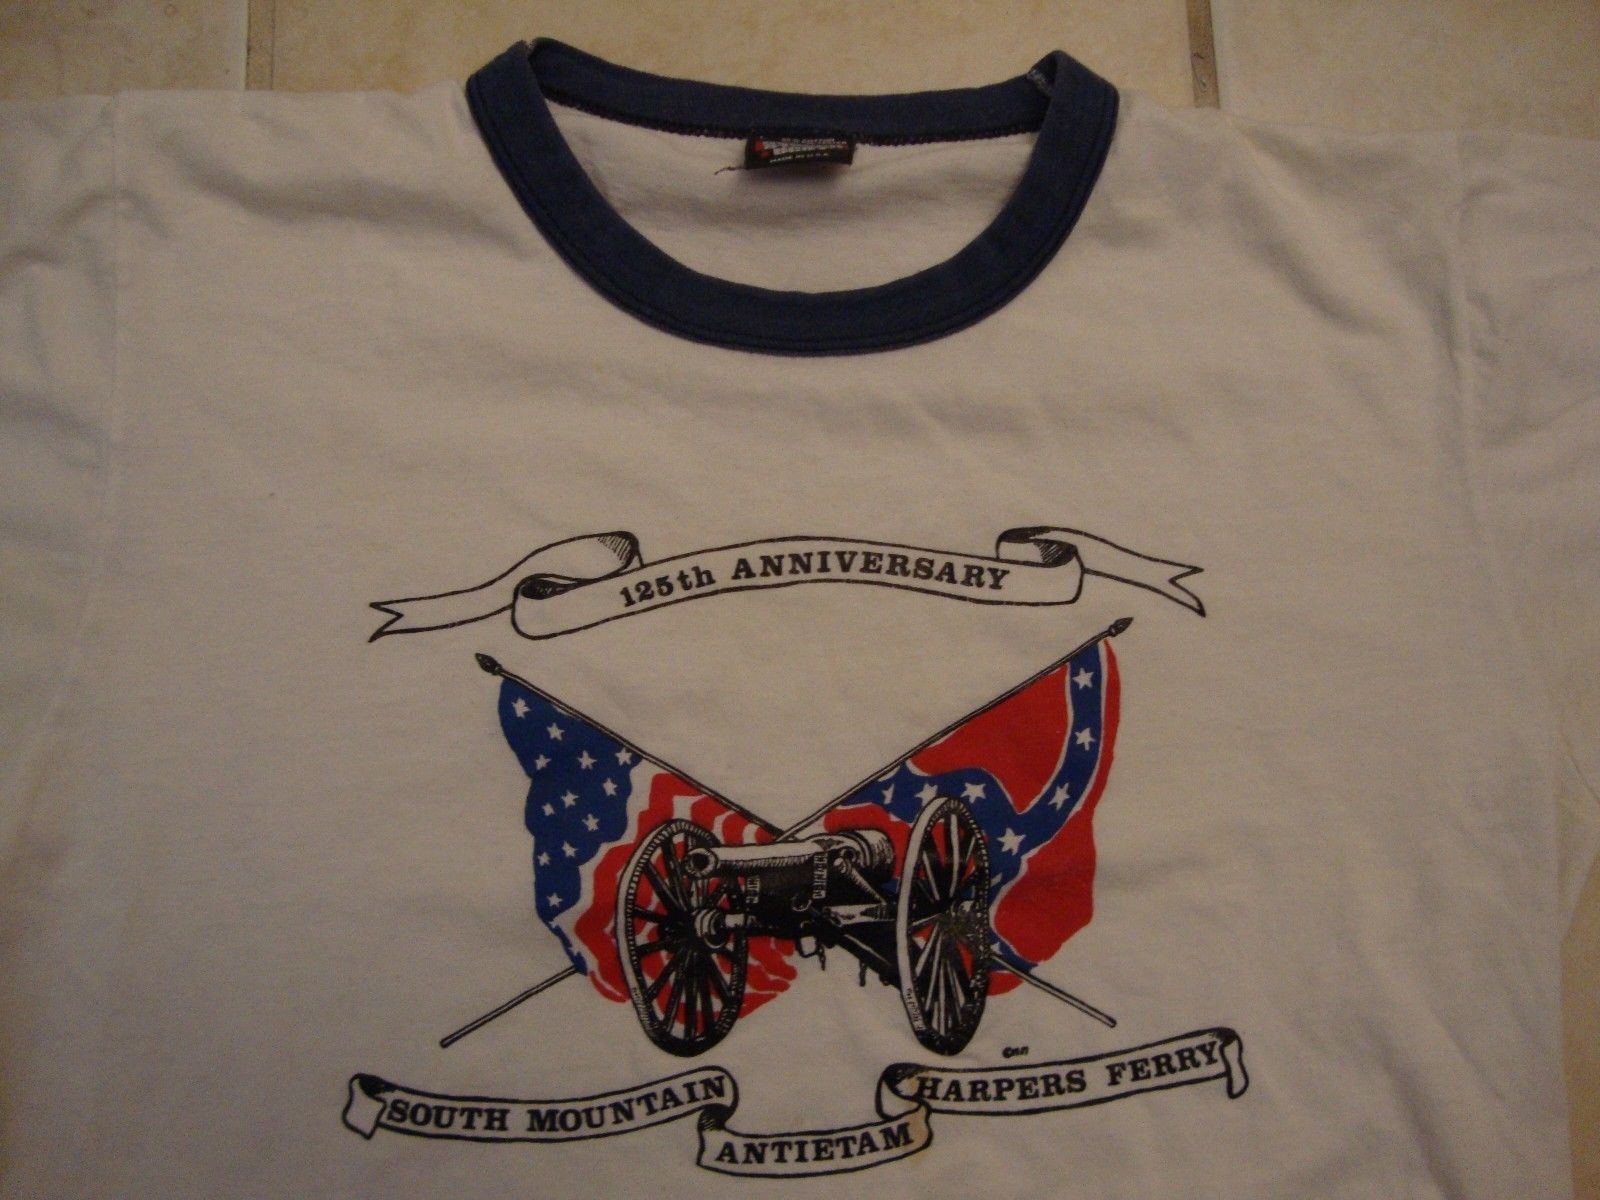 Primary image for Vintage 125th Anniversary South Mountain Antietam Harpers Ferry T Shirt Size L